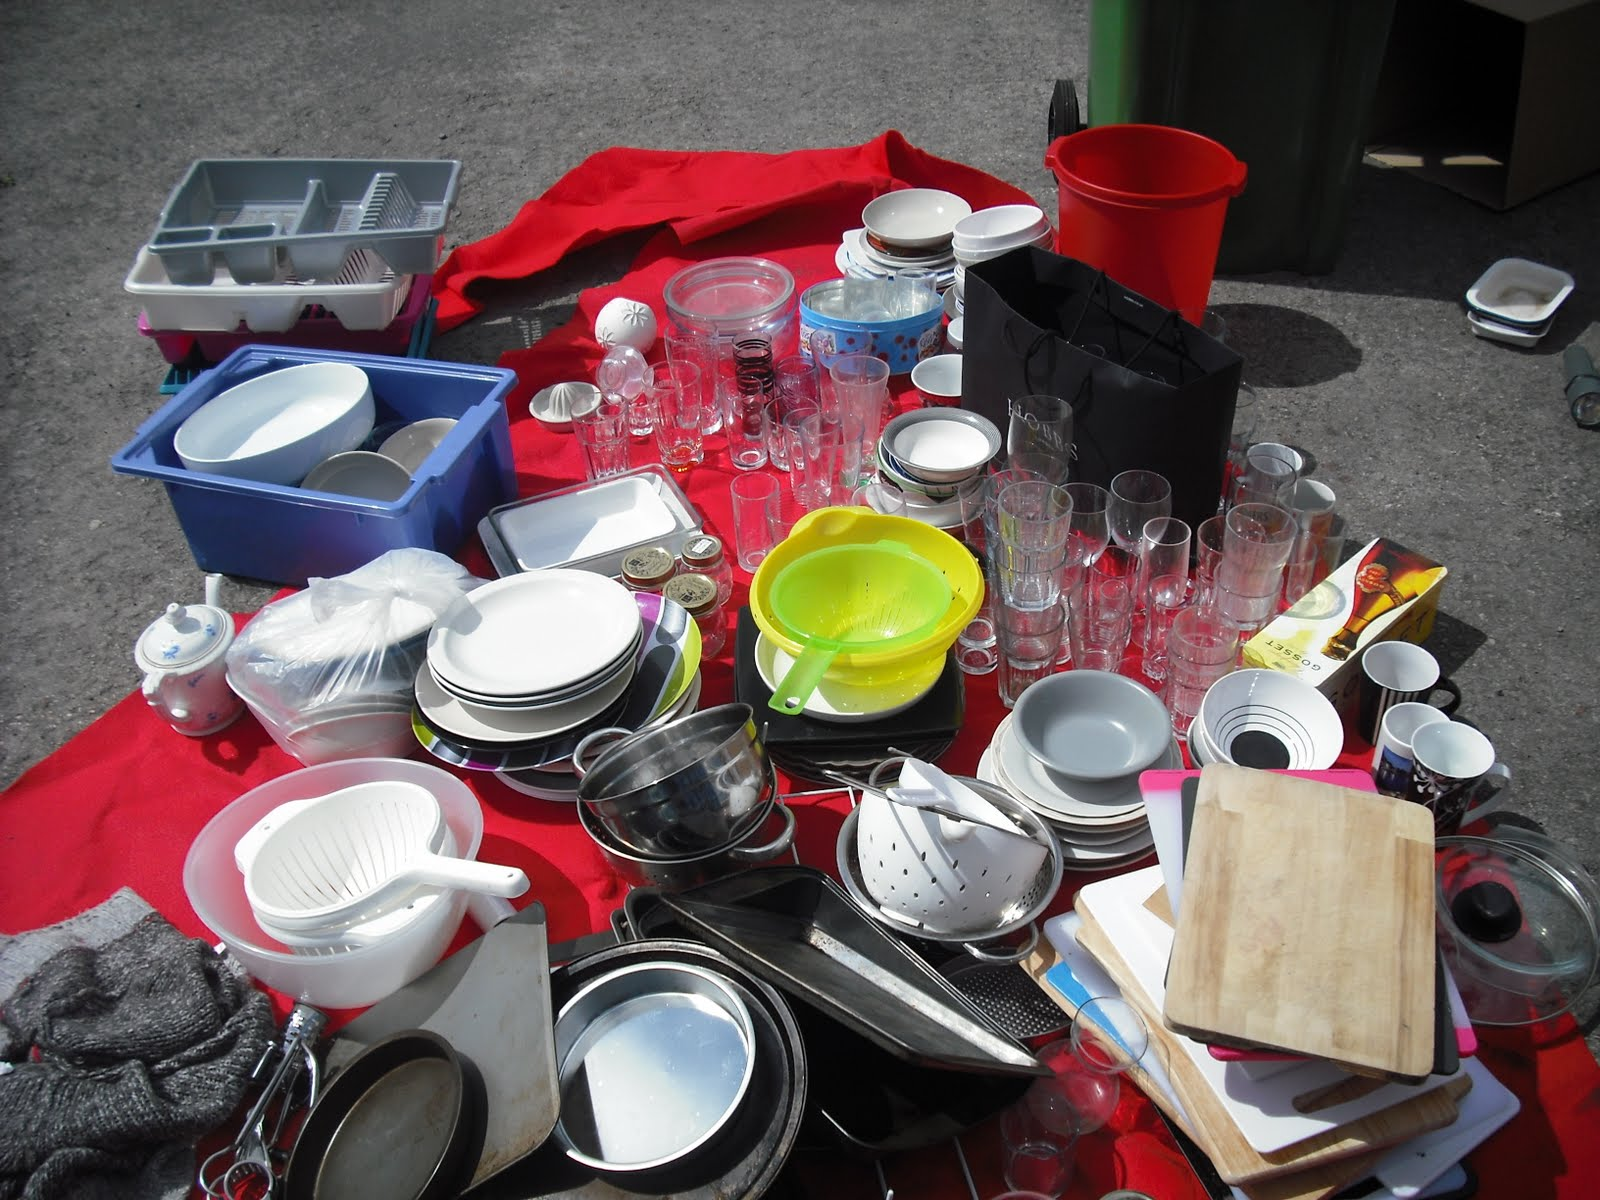 Cardiff living kitchen bric a brac sort out - Broc a brac 51 ...